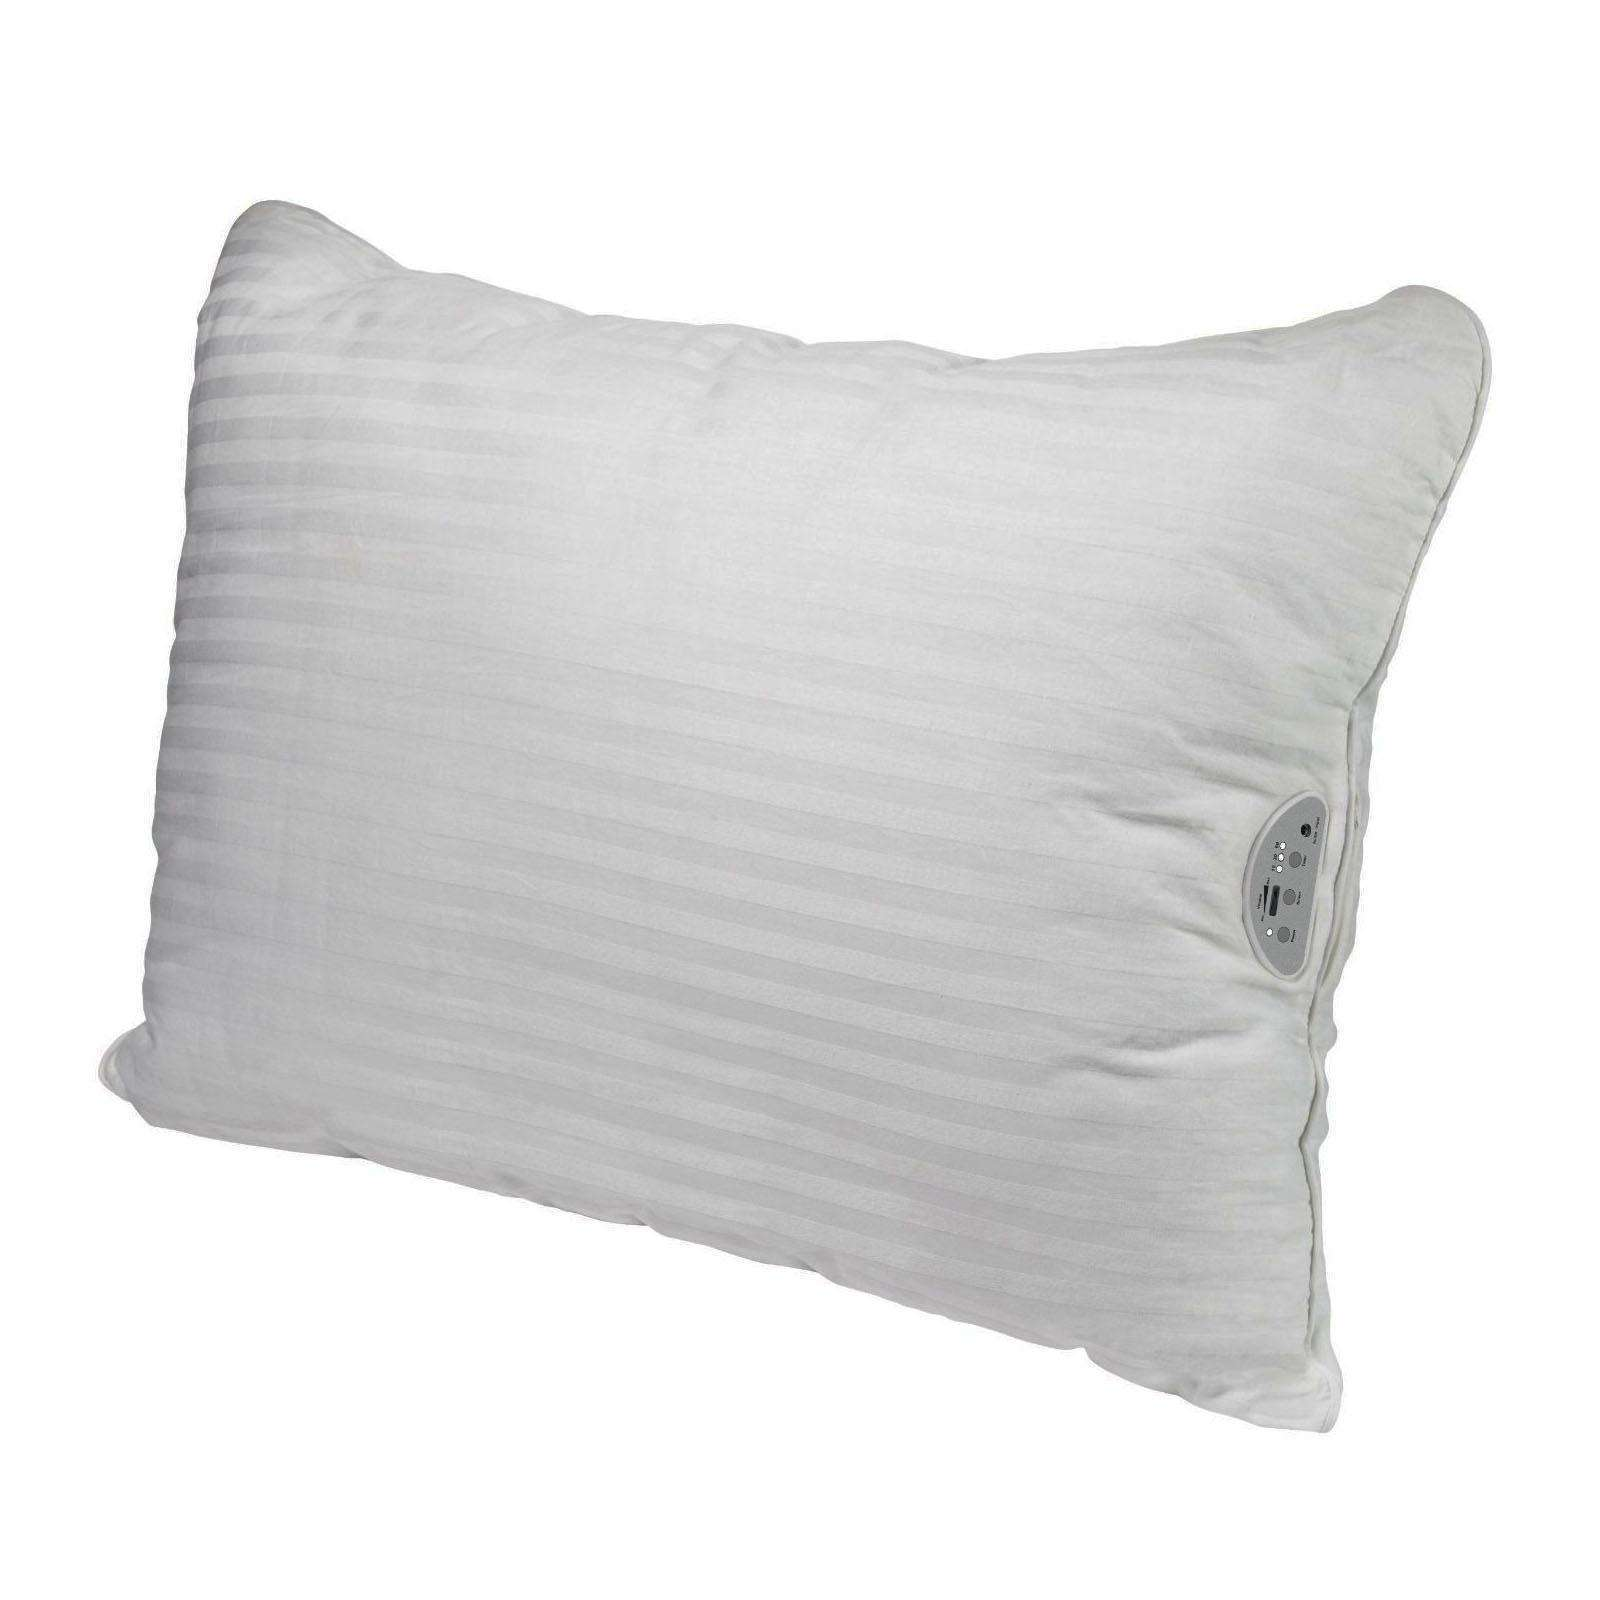 Conair Sound Therapy Pillow